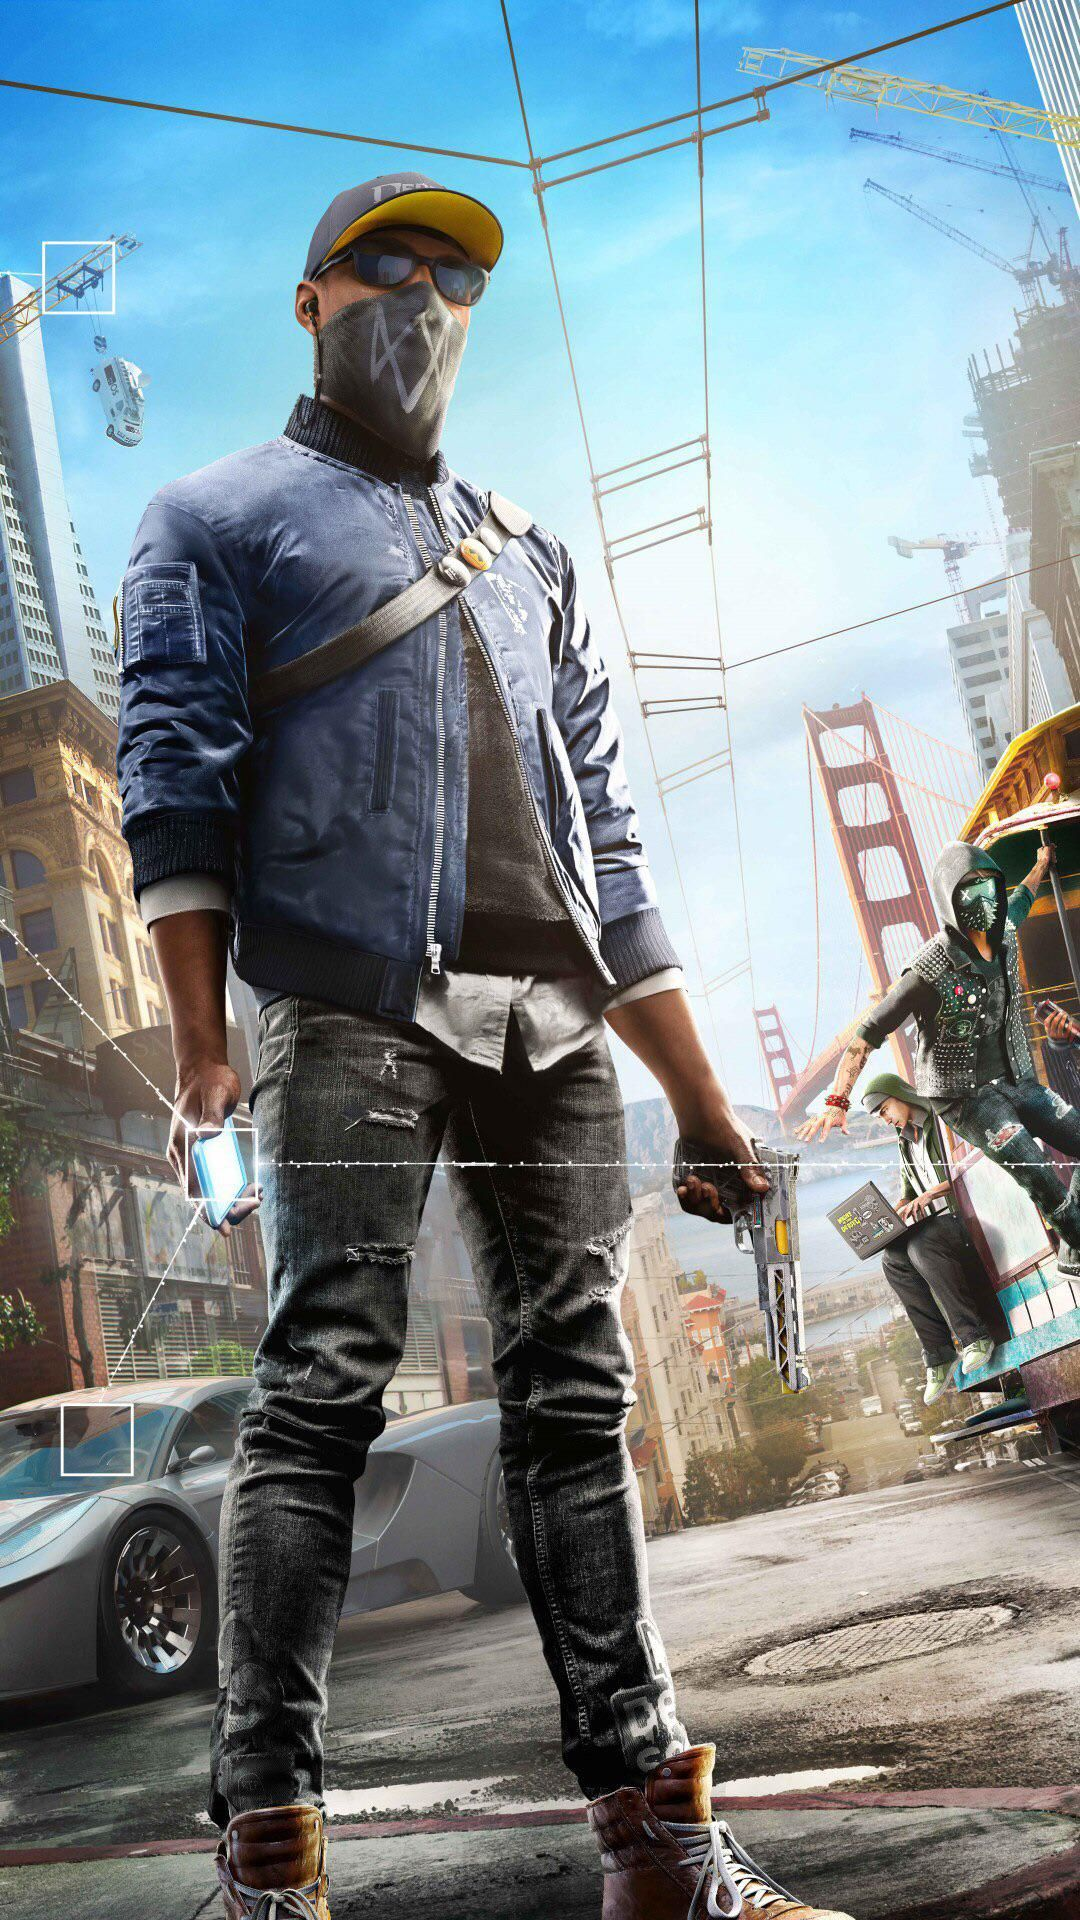 Watch Dogs In 2020 Watch Dogs Watch Dogs 1 Gaming Wallpapers Watch dogs 2 wallpaper hd for android